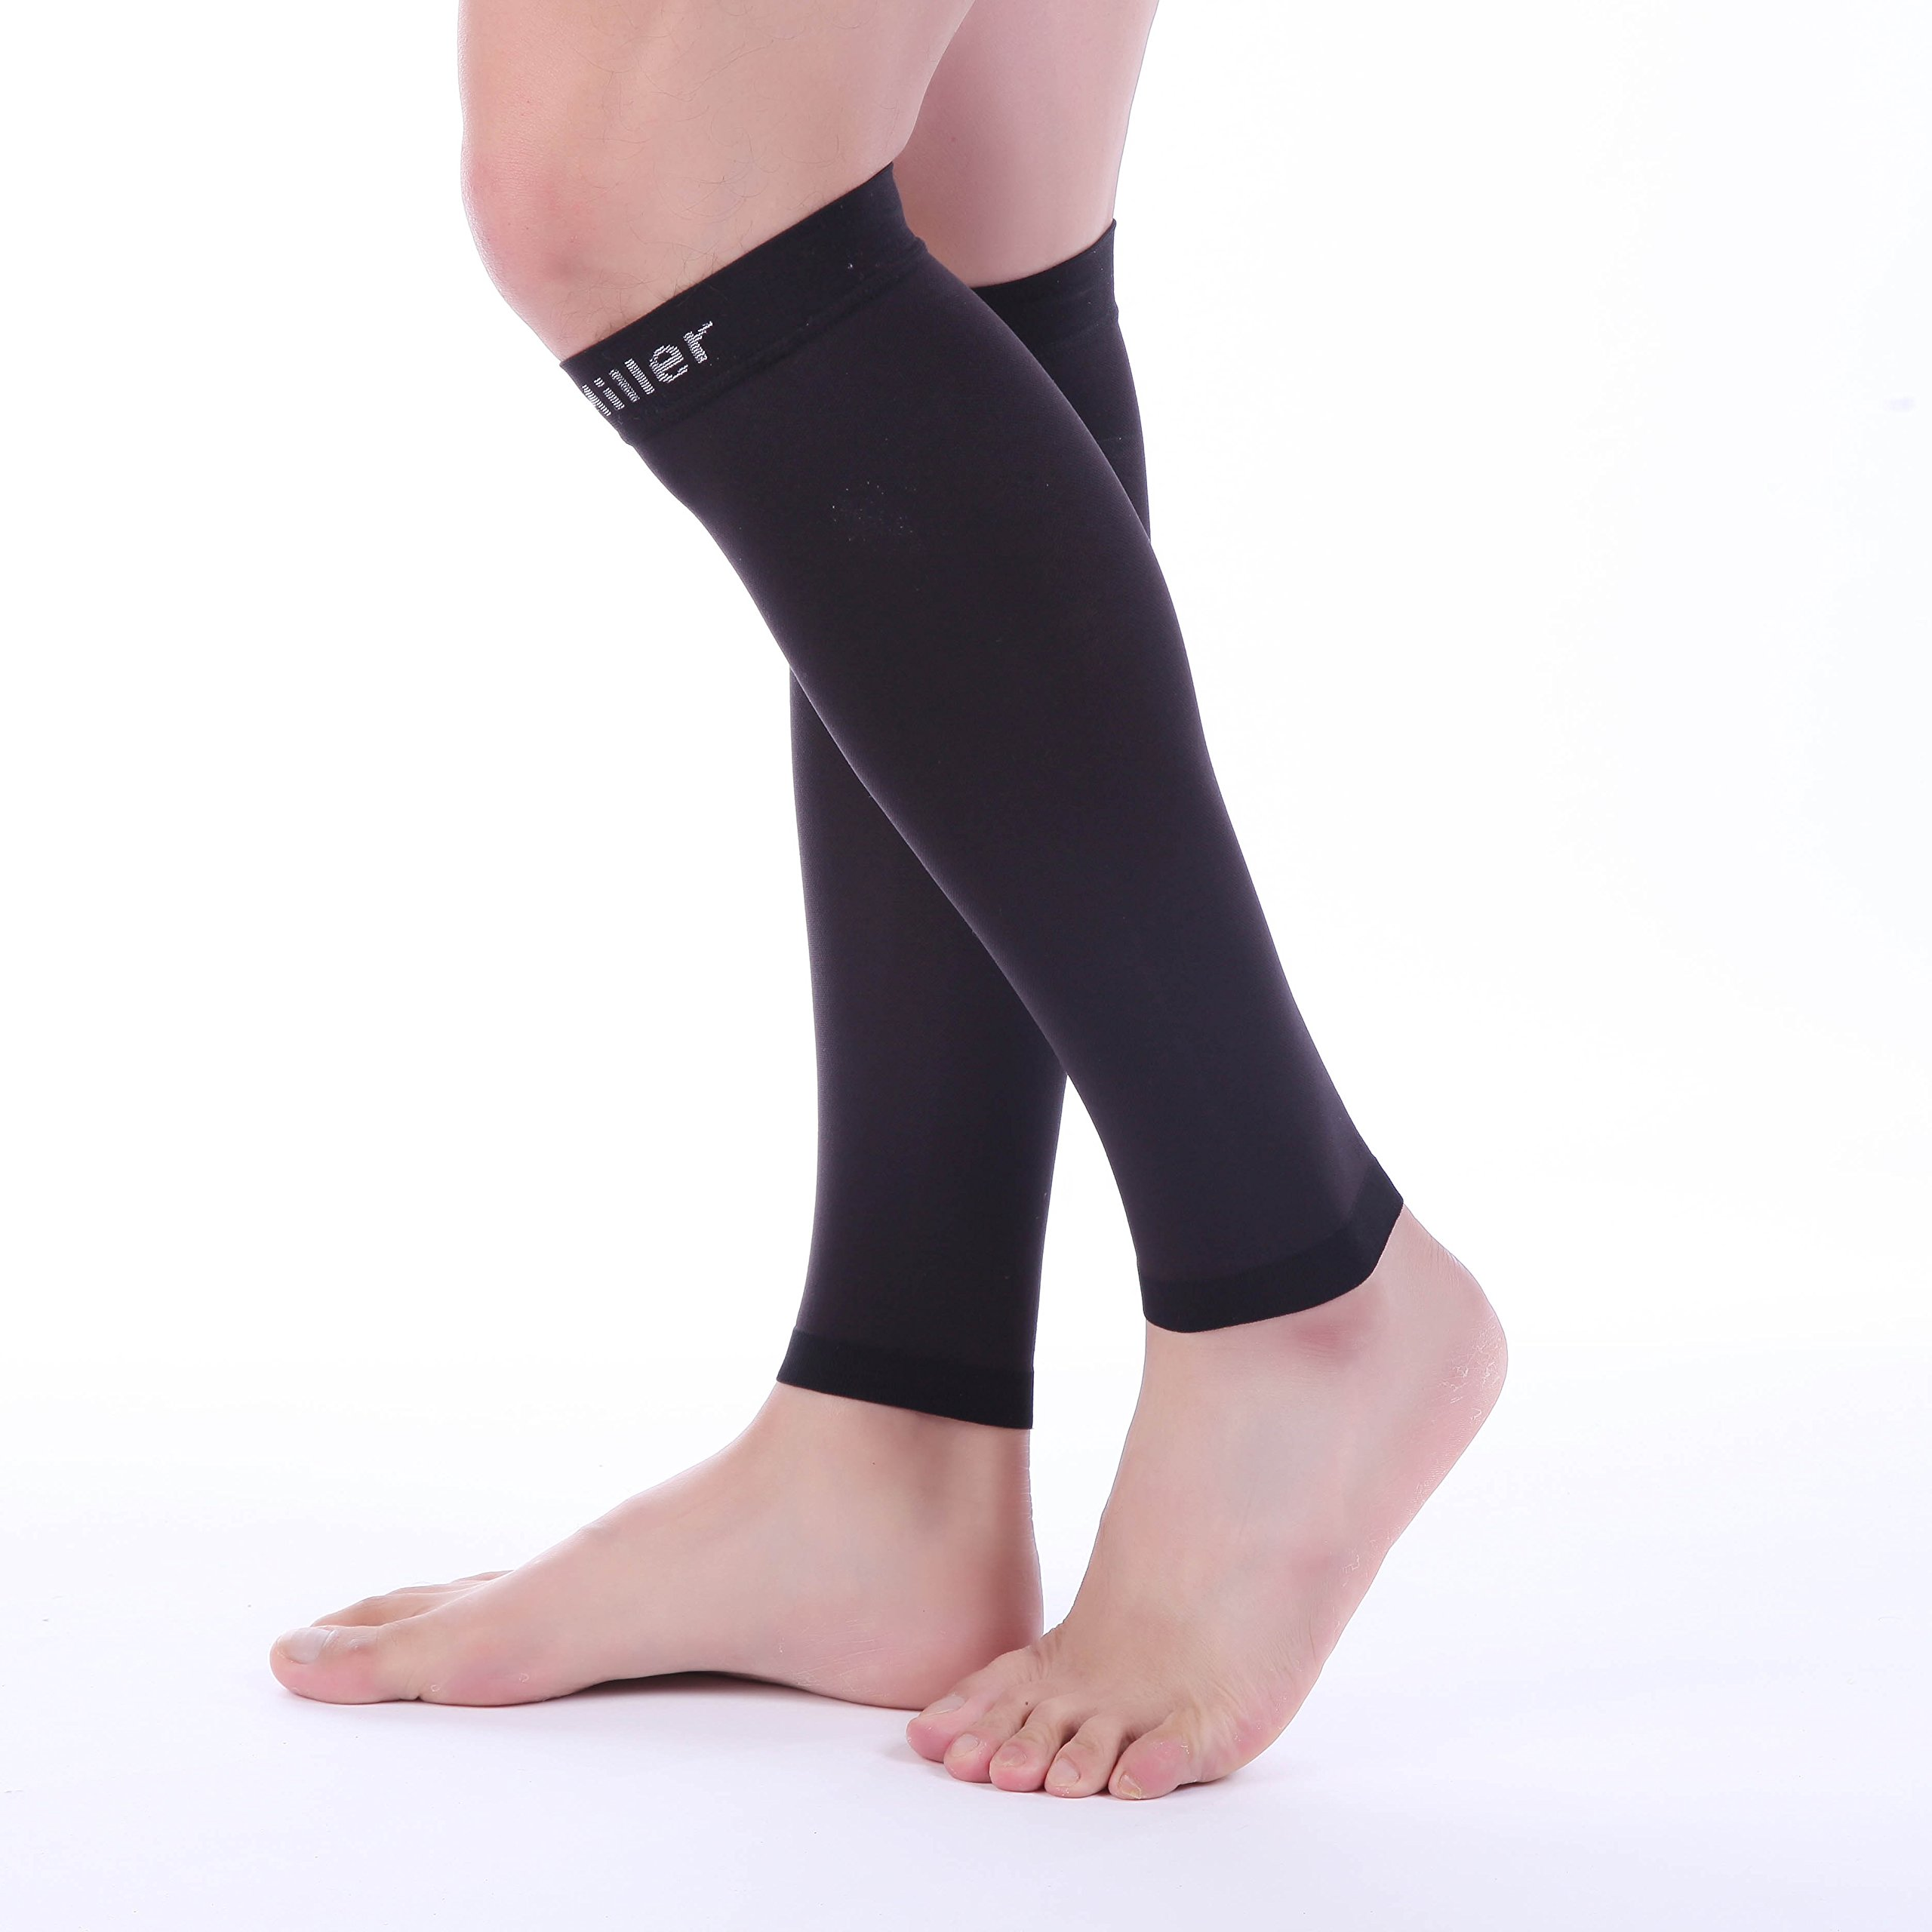 Doc Miller Premium Calf Compression Sleeve 1 Pair 20-30mmHg Strong Calf Support Graduated Pressure for Sports Running Muscle Recovery Shin Splints Varicose Veins (Black, 2-Pack, 4X-Large) by Doc Miller (Image #9)